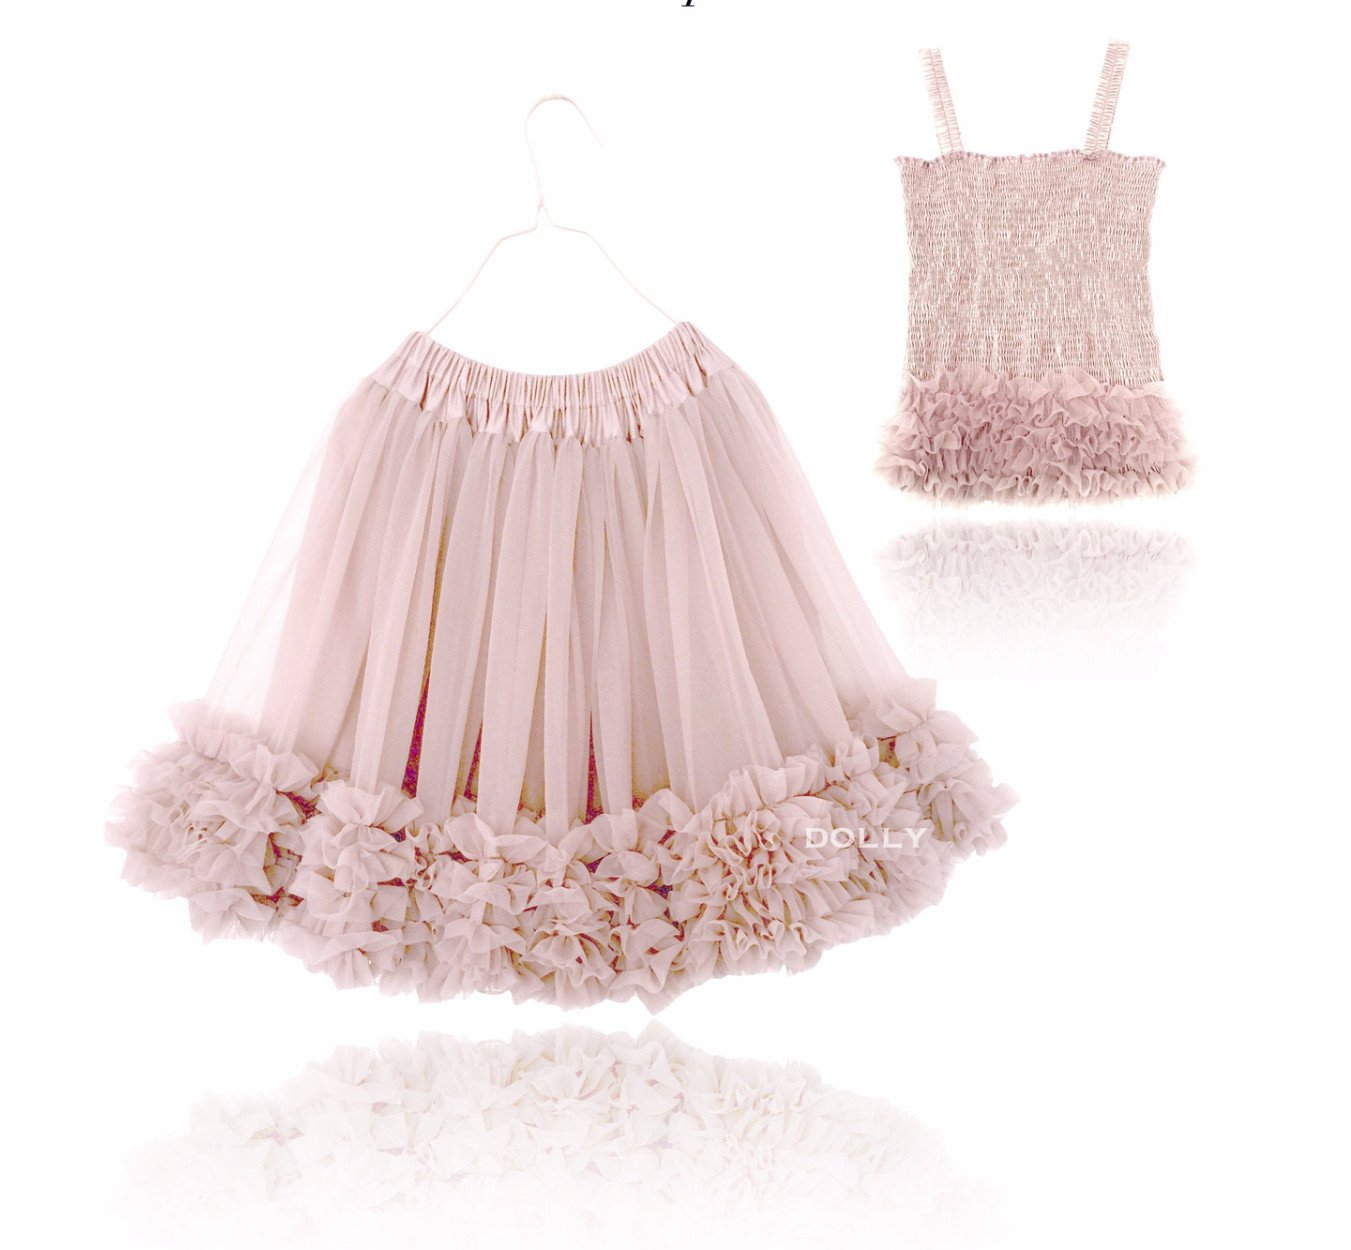 DOLLY by Le Petit Tom ® FRILLY SET SKIRT & TOP ballet pink - DOLLY by Le Petit Tom ®